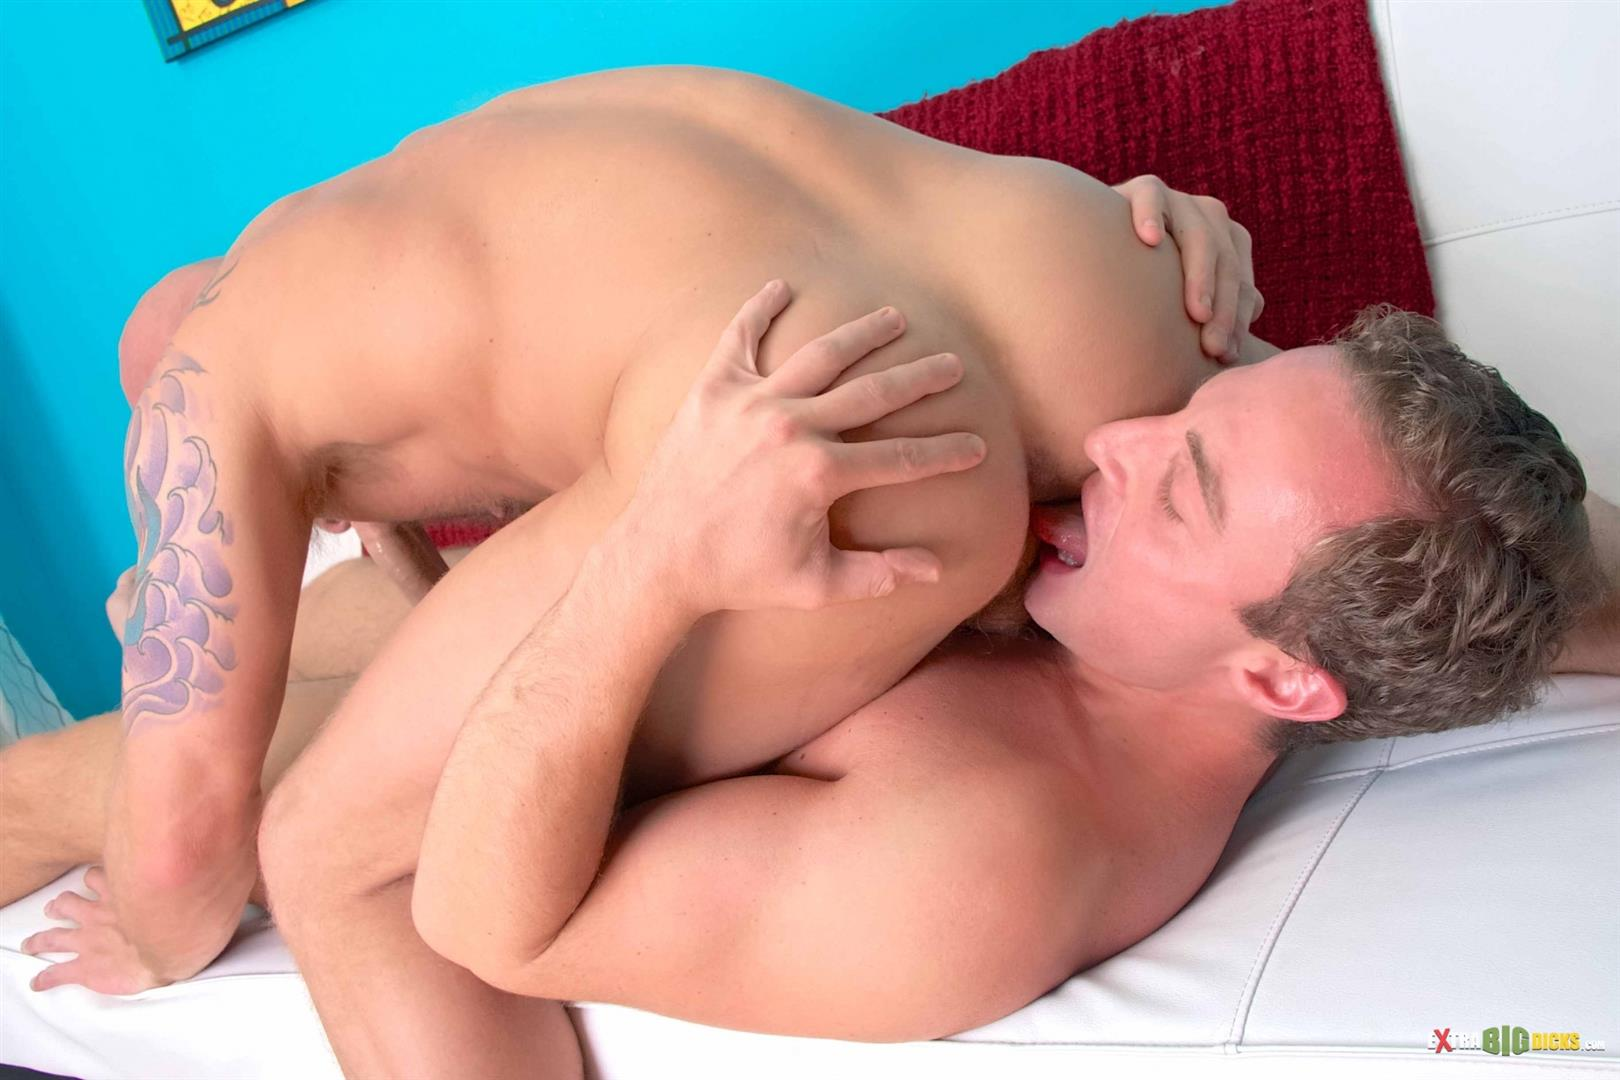 Extra Big Dicks Drake Jaden & Jacob Durham Hairy Muscle Guy Gets Fucked With A Huge Cock Amateur Gay Porn 05